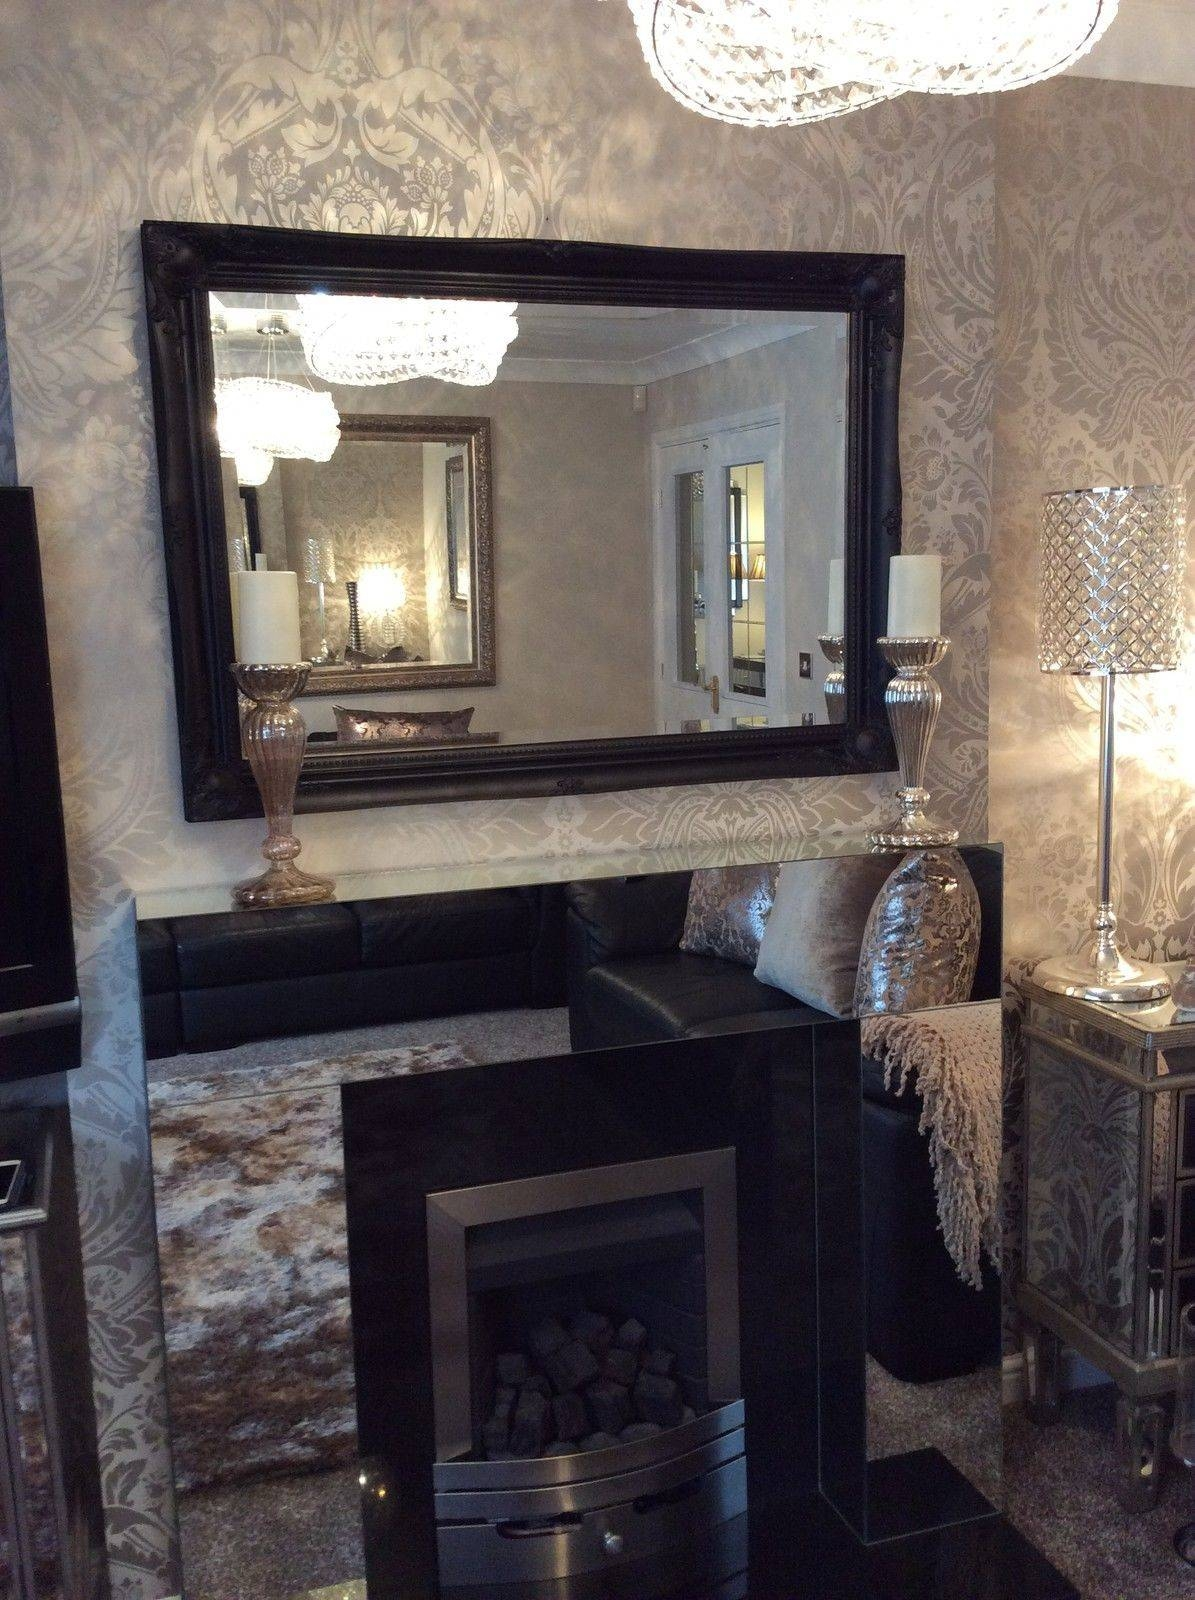 Black Shabby Chic Framed Ornate Overmantle Wall Mirror - Range Of pertaining to Ornate Large Mirrors (Image 6 of 25)